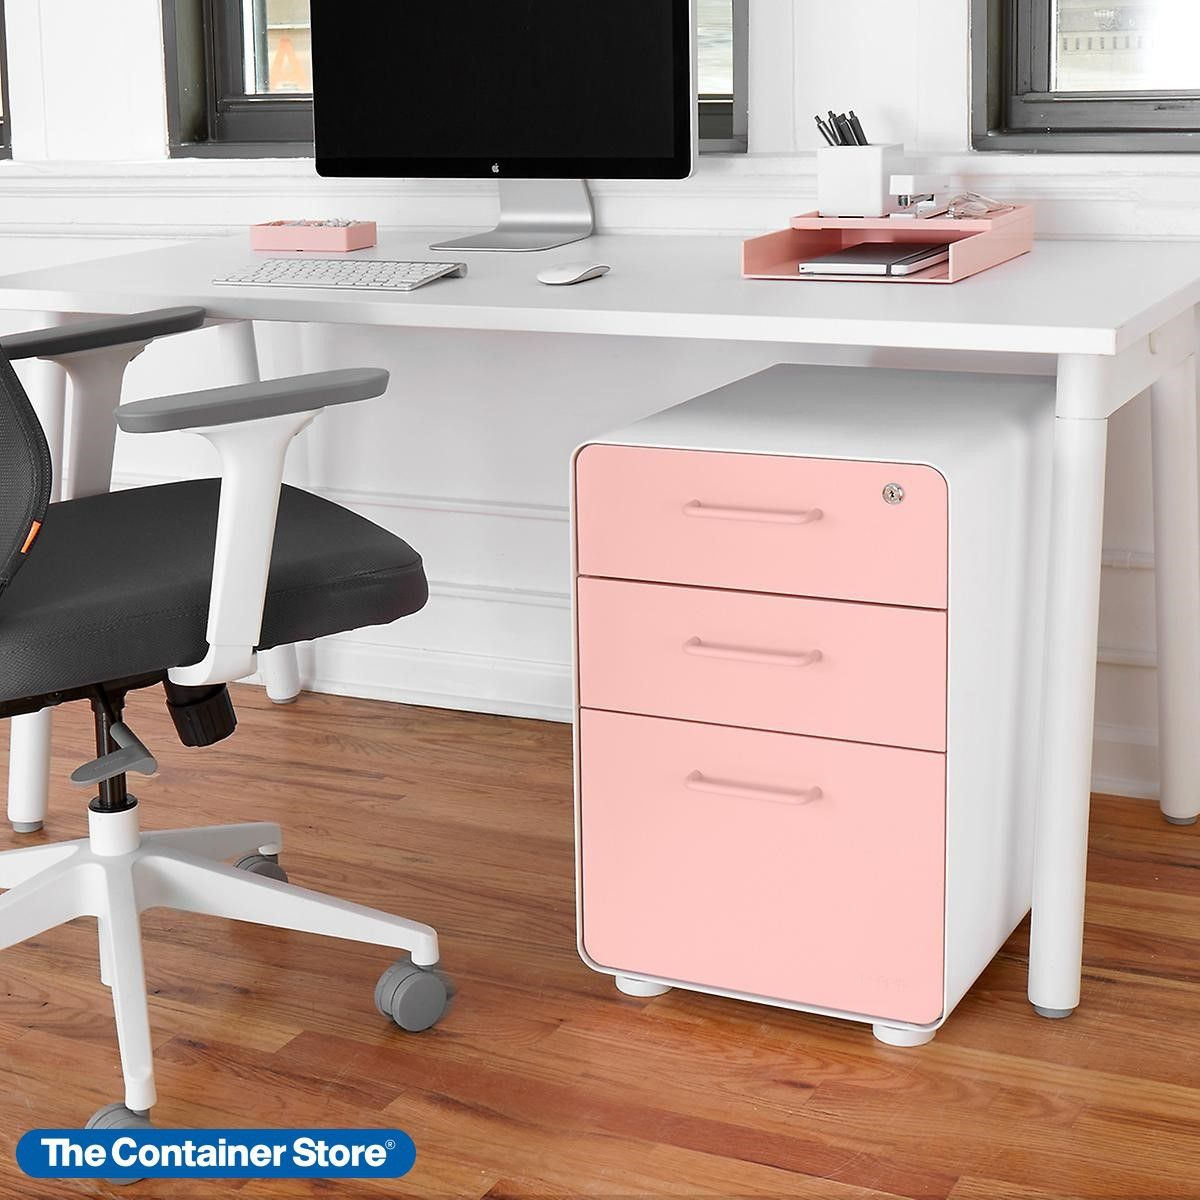 Pin on Office & Craft Space Organization